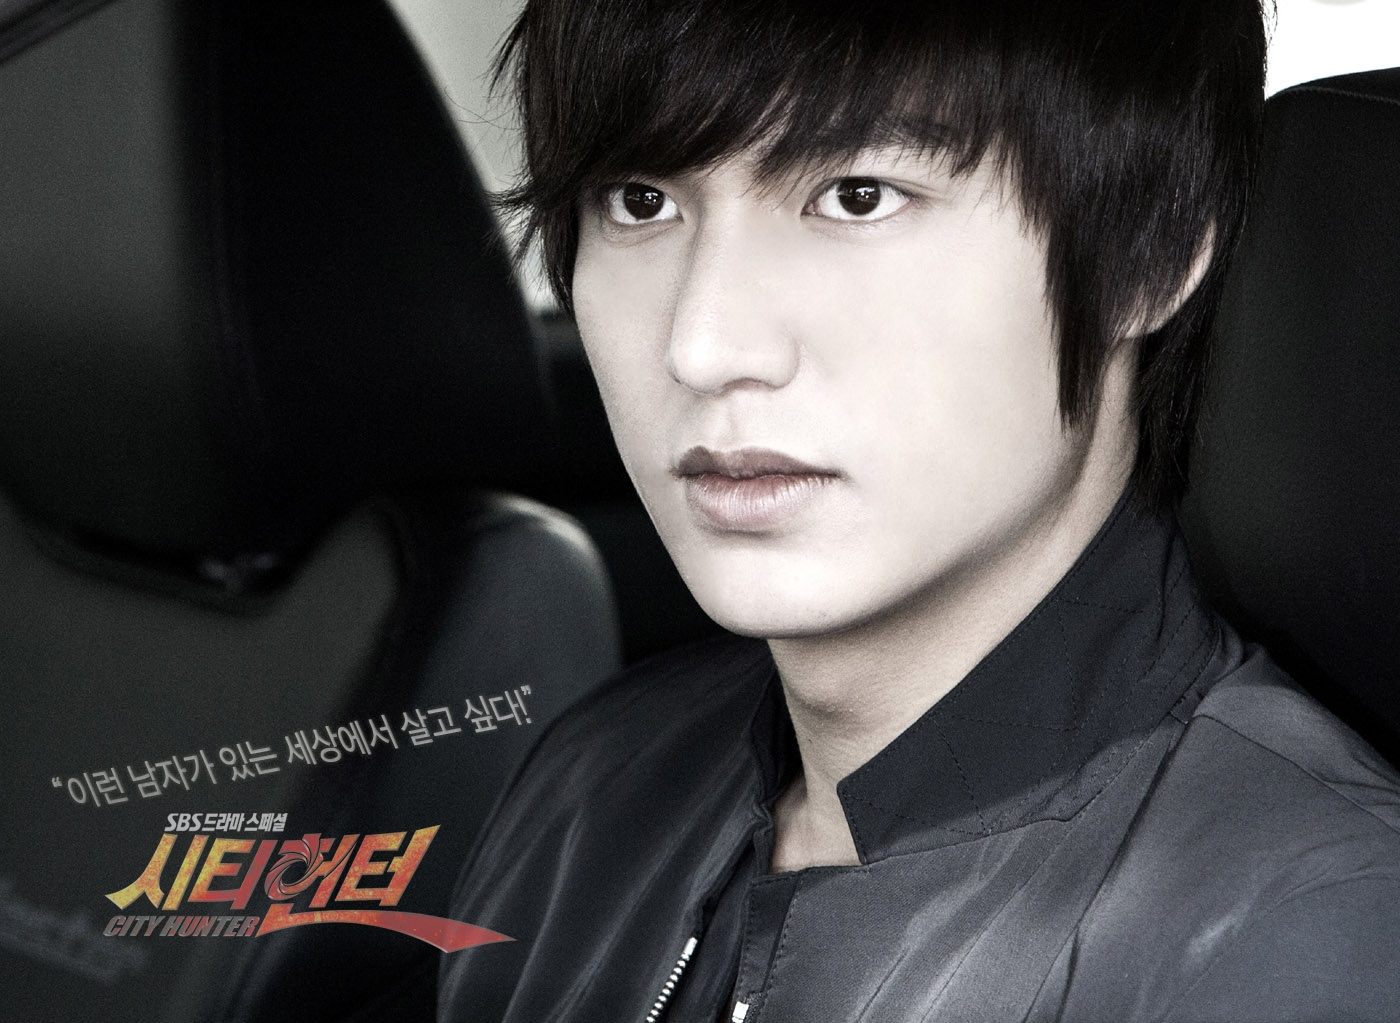 Hd Wallpapers Hd Gallery Asian Boys Lee Min Ho City Hunter